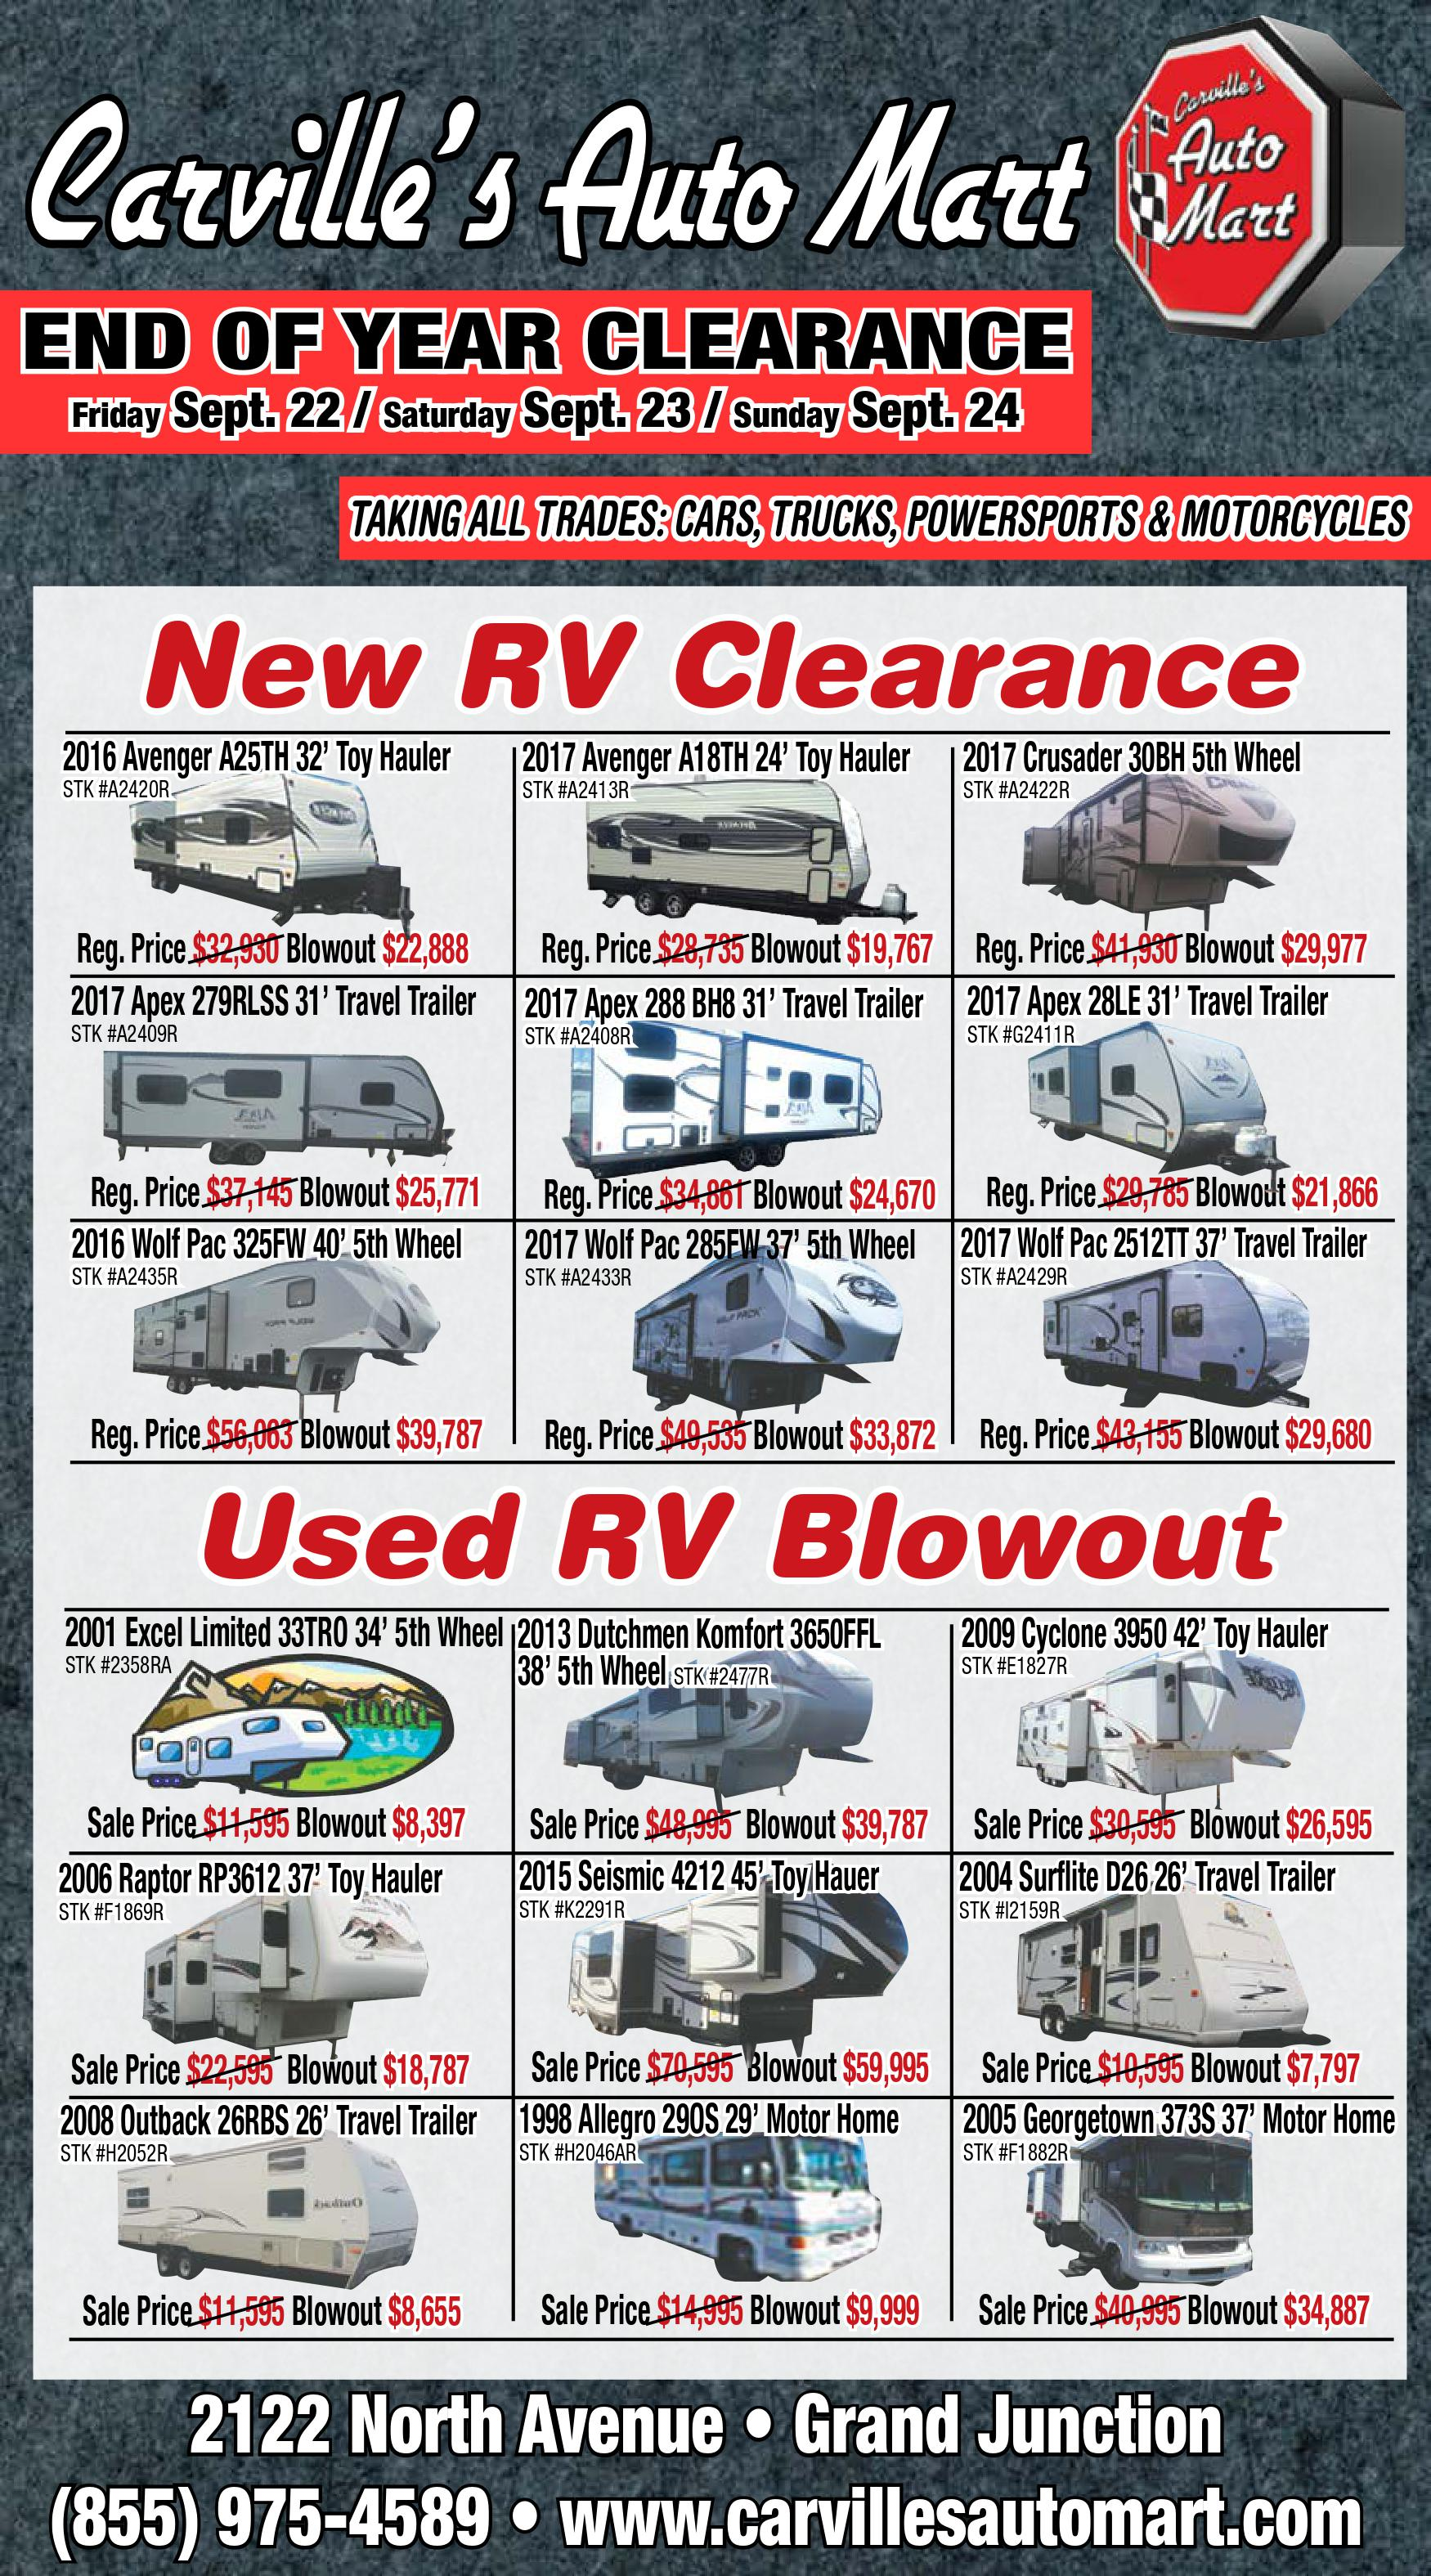 Car Clearance Deals 2016 >> End Of Year Clearance Features Blowout Prices On New Used Rvs